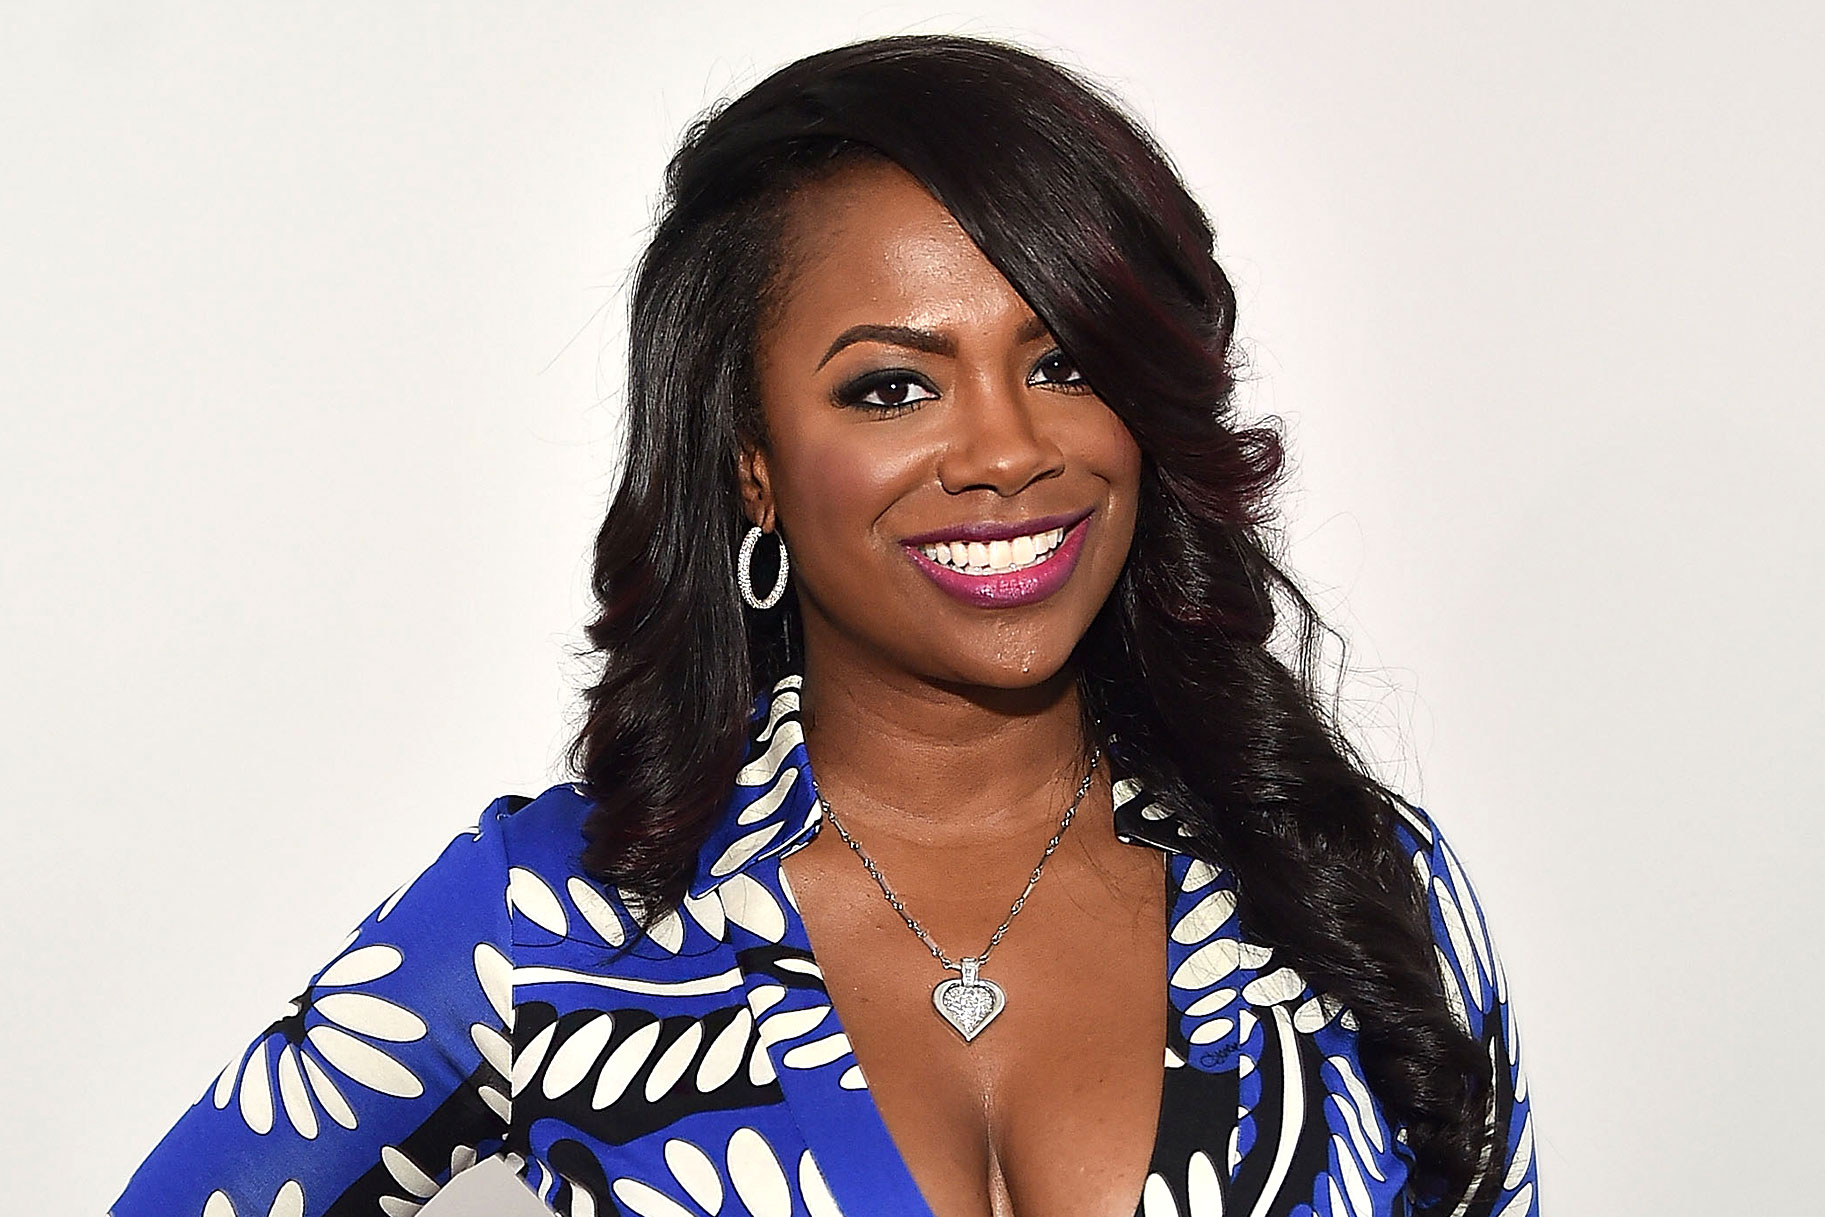 What would you ask Kandi Burruss?